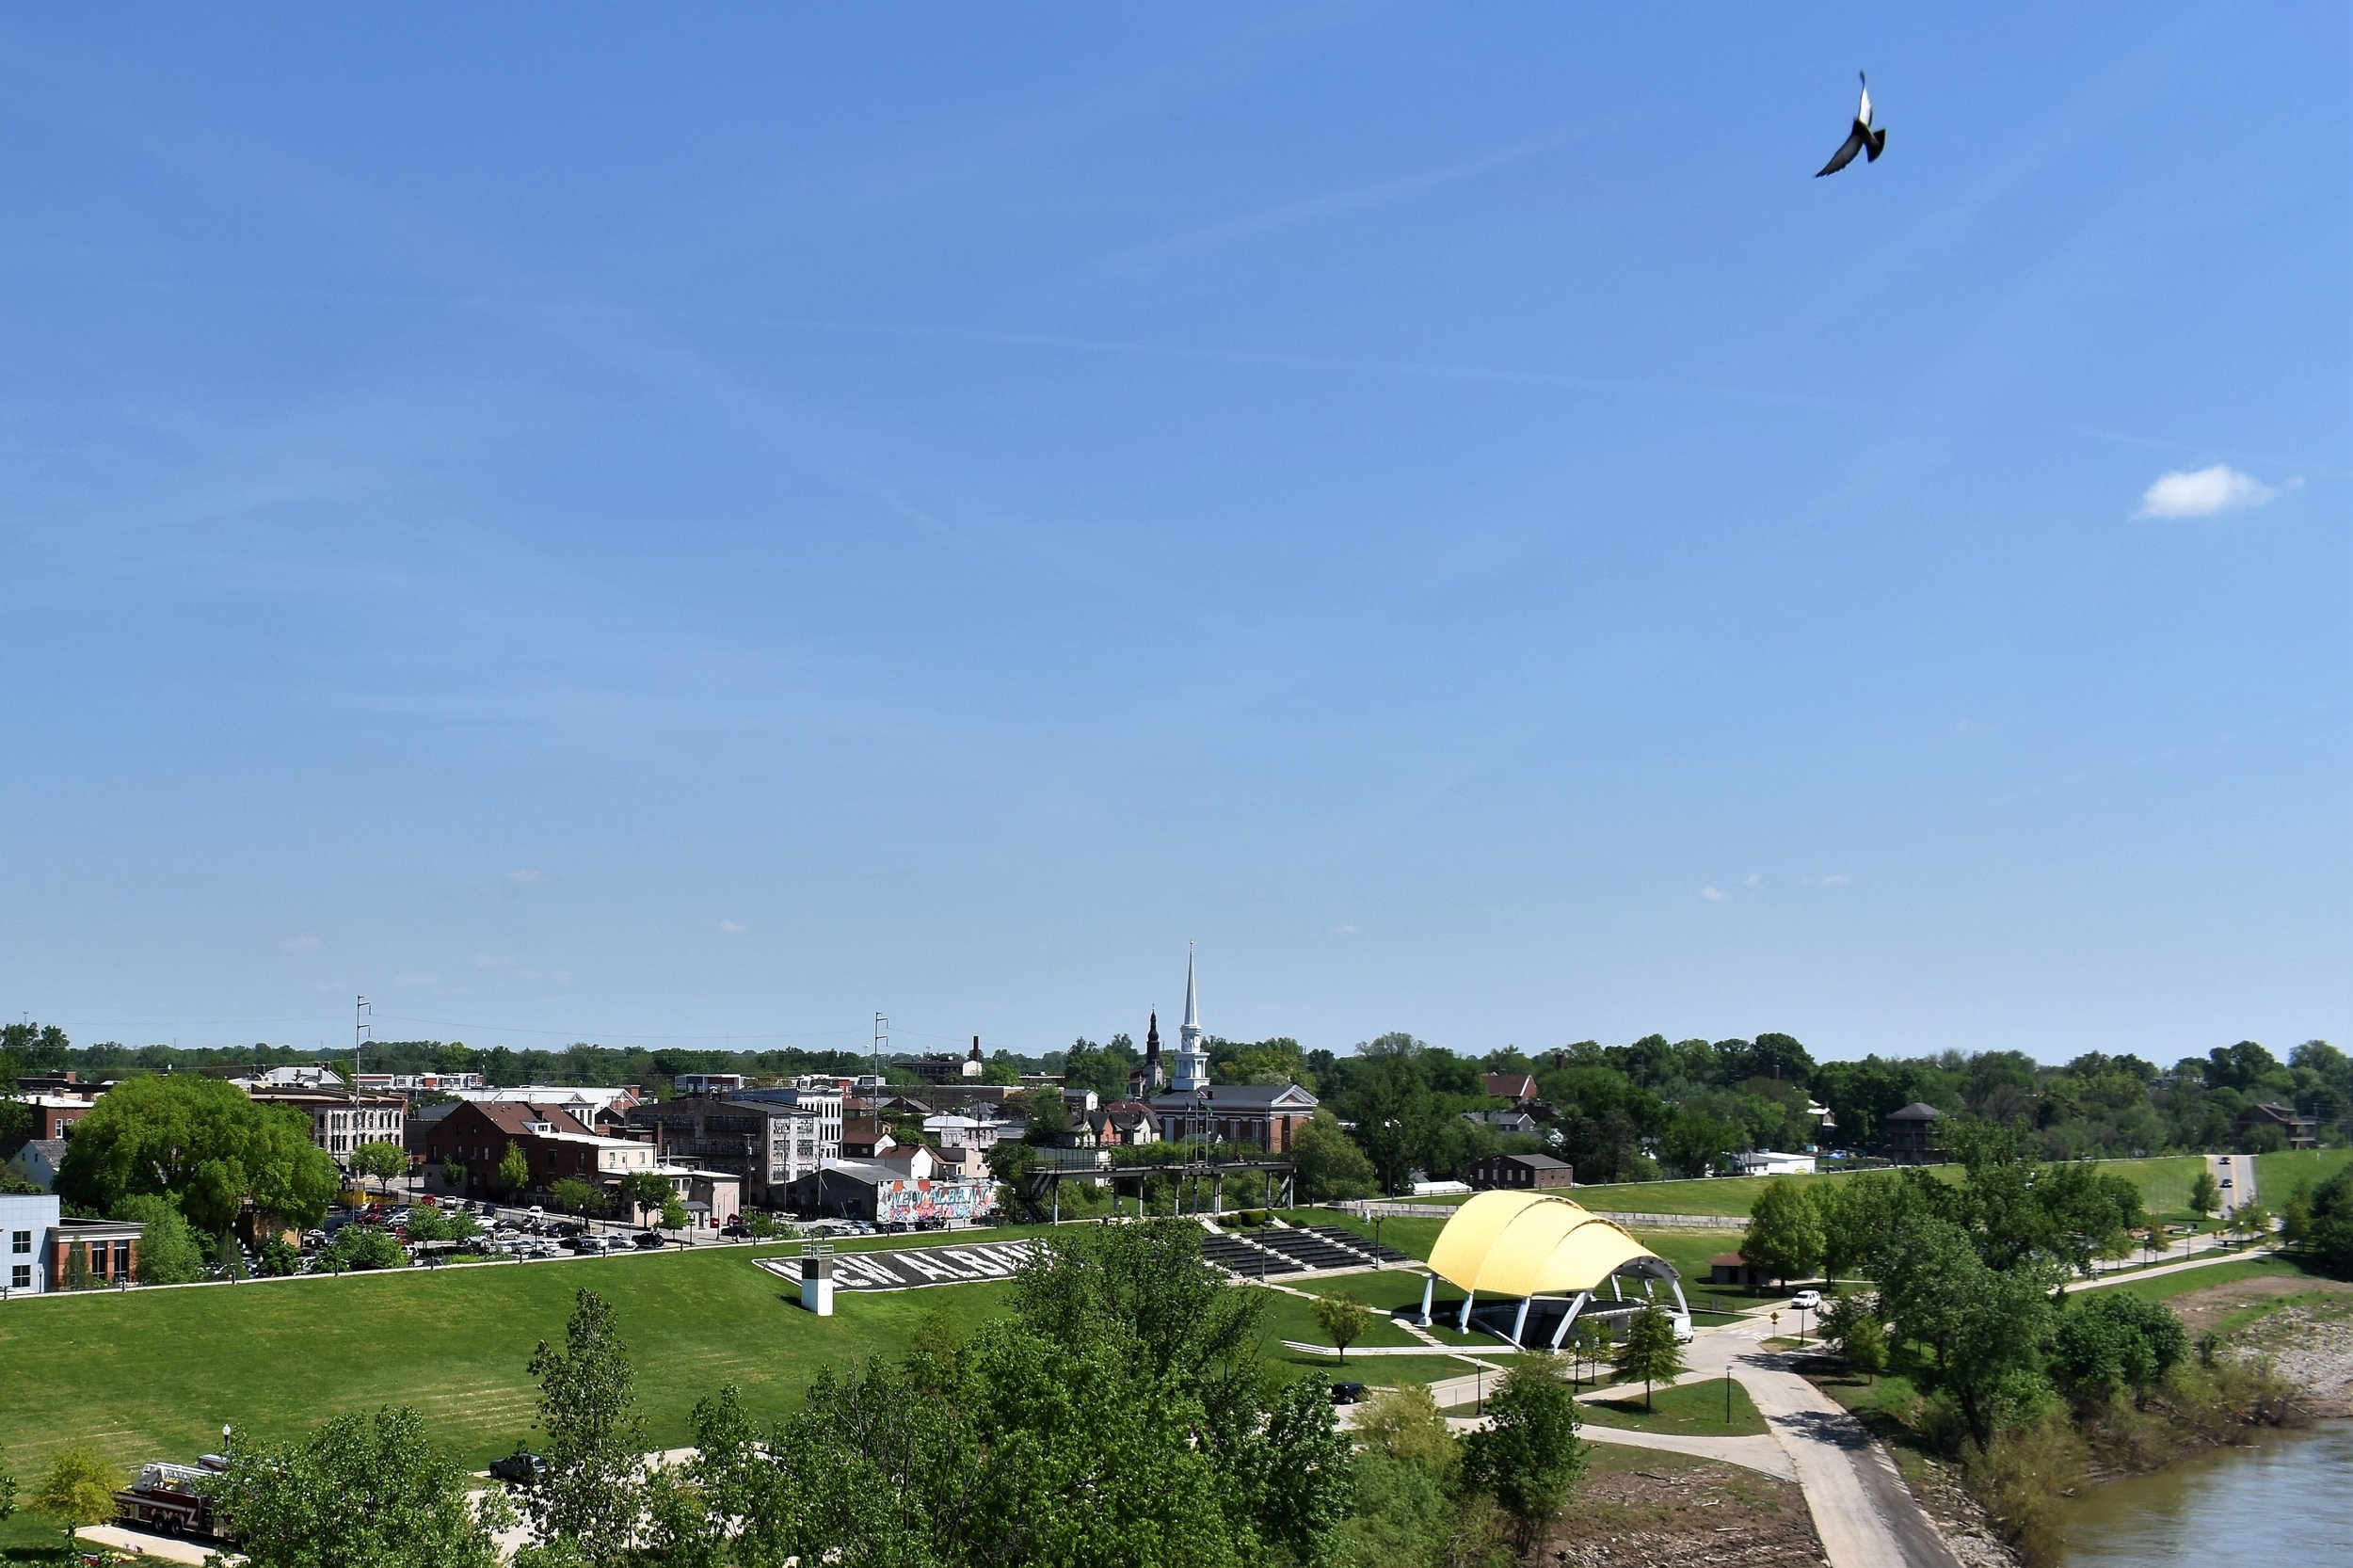 As visitors cross into New Albany over the Ohio River, the historic steeple is once again visible.